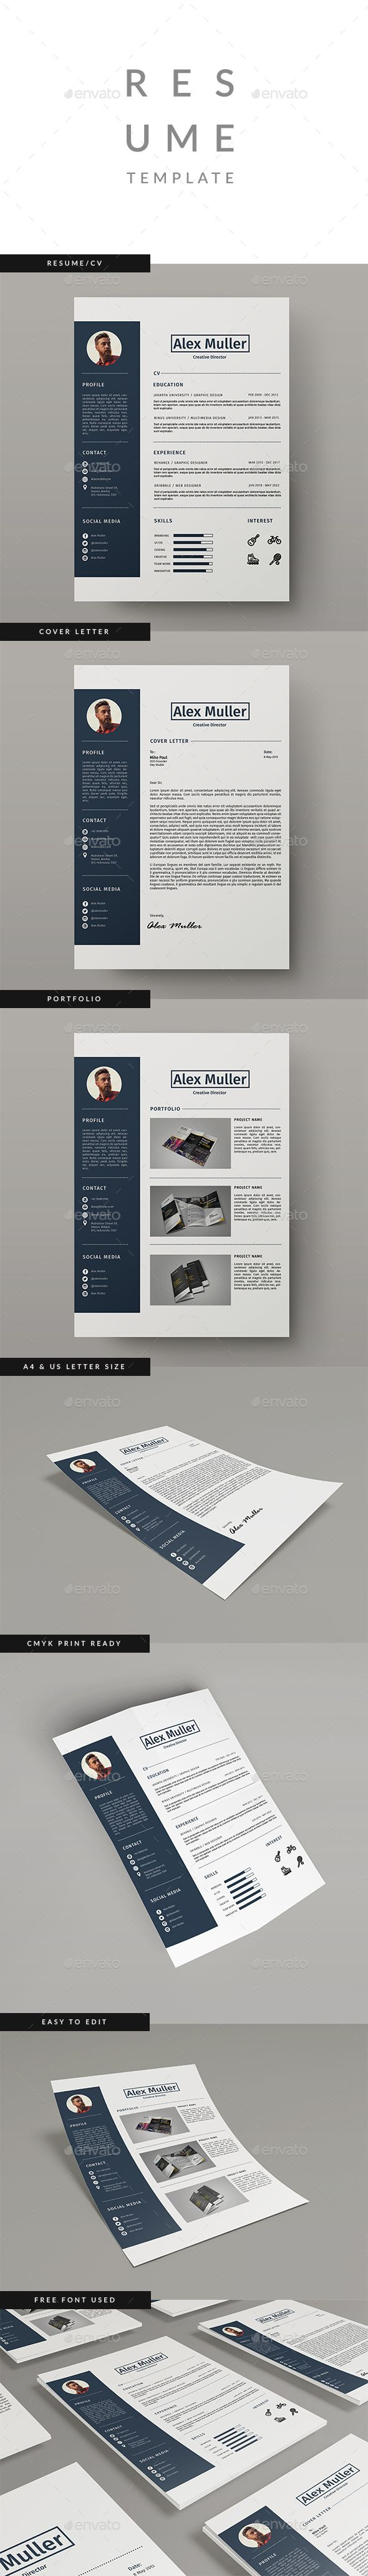 Resume Template Indesign Indd   Everyday